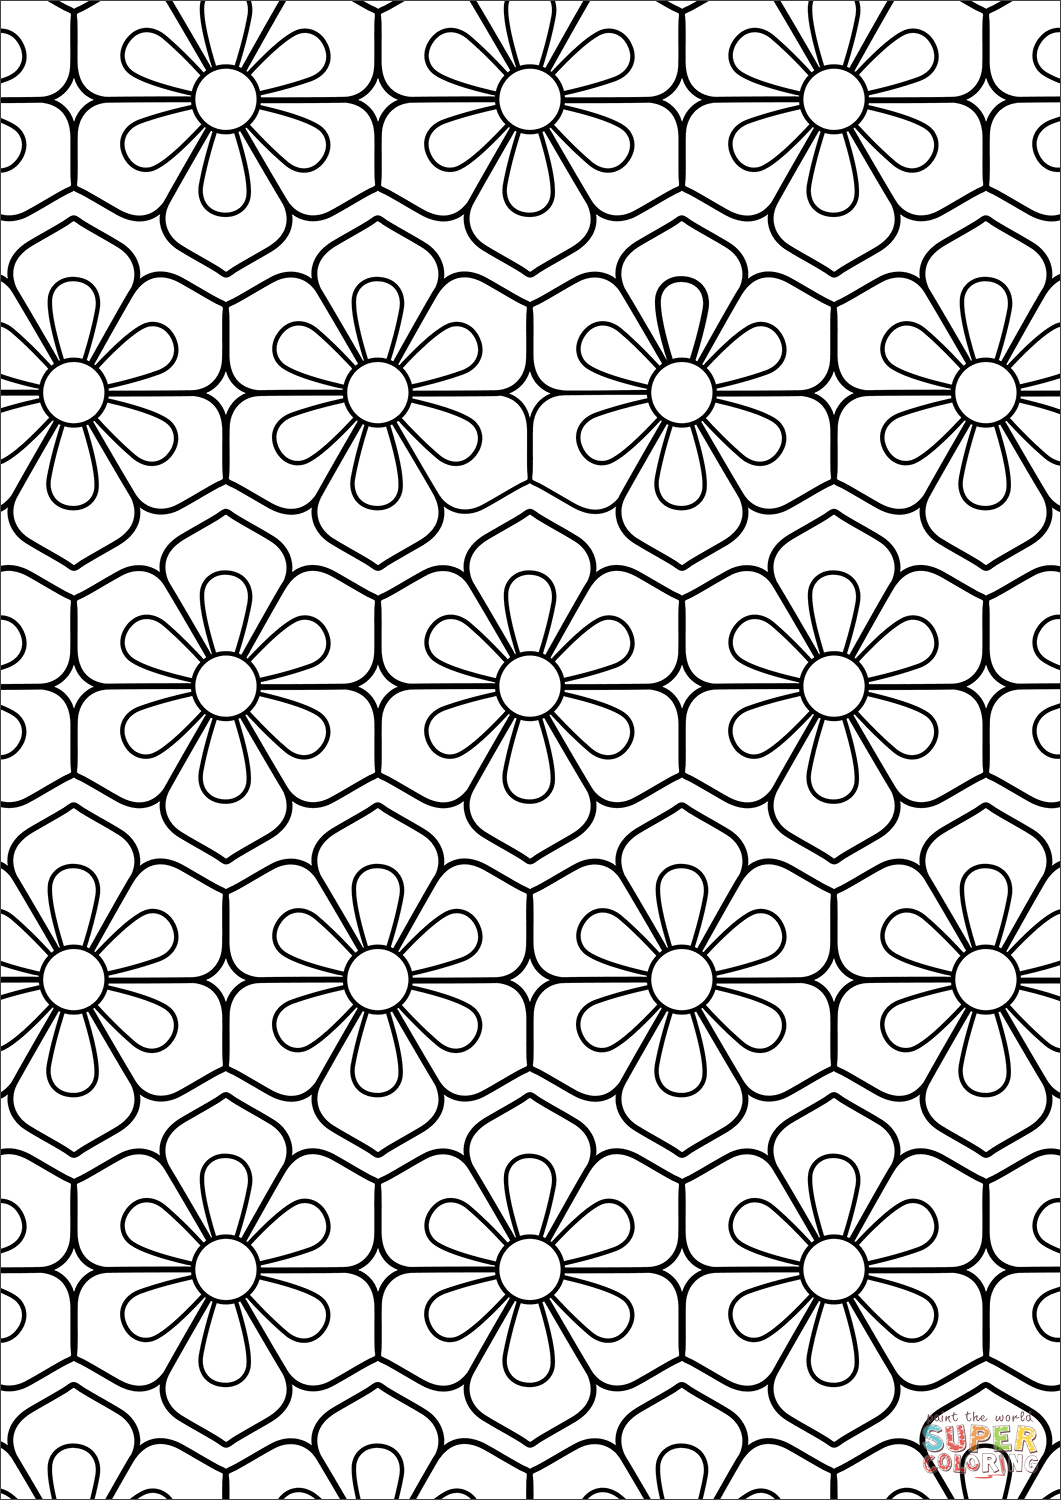 simple patterns to colour cool geometric design coloring pages getcoloringpagescom to simple patterns colour